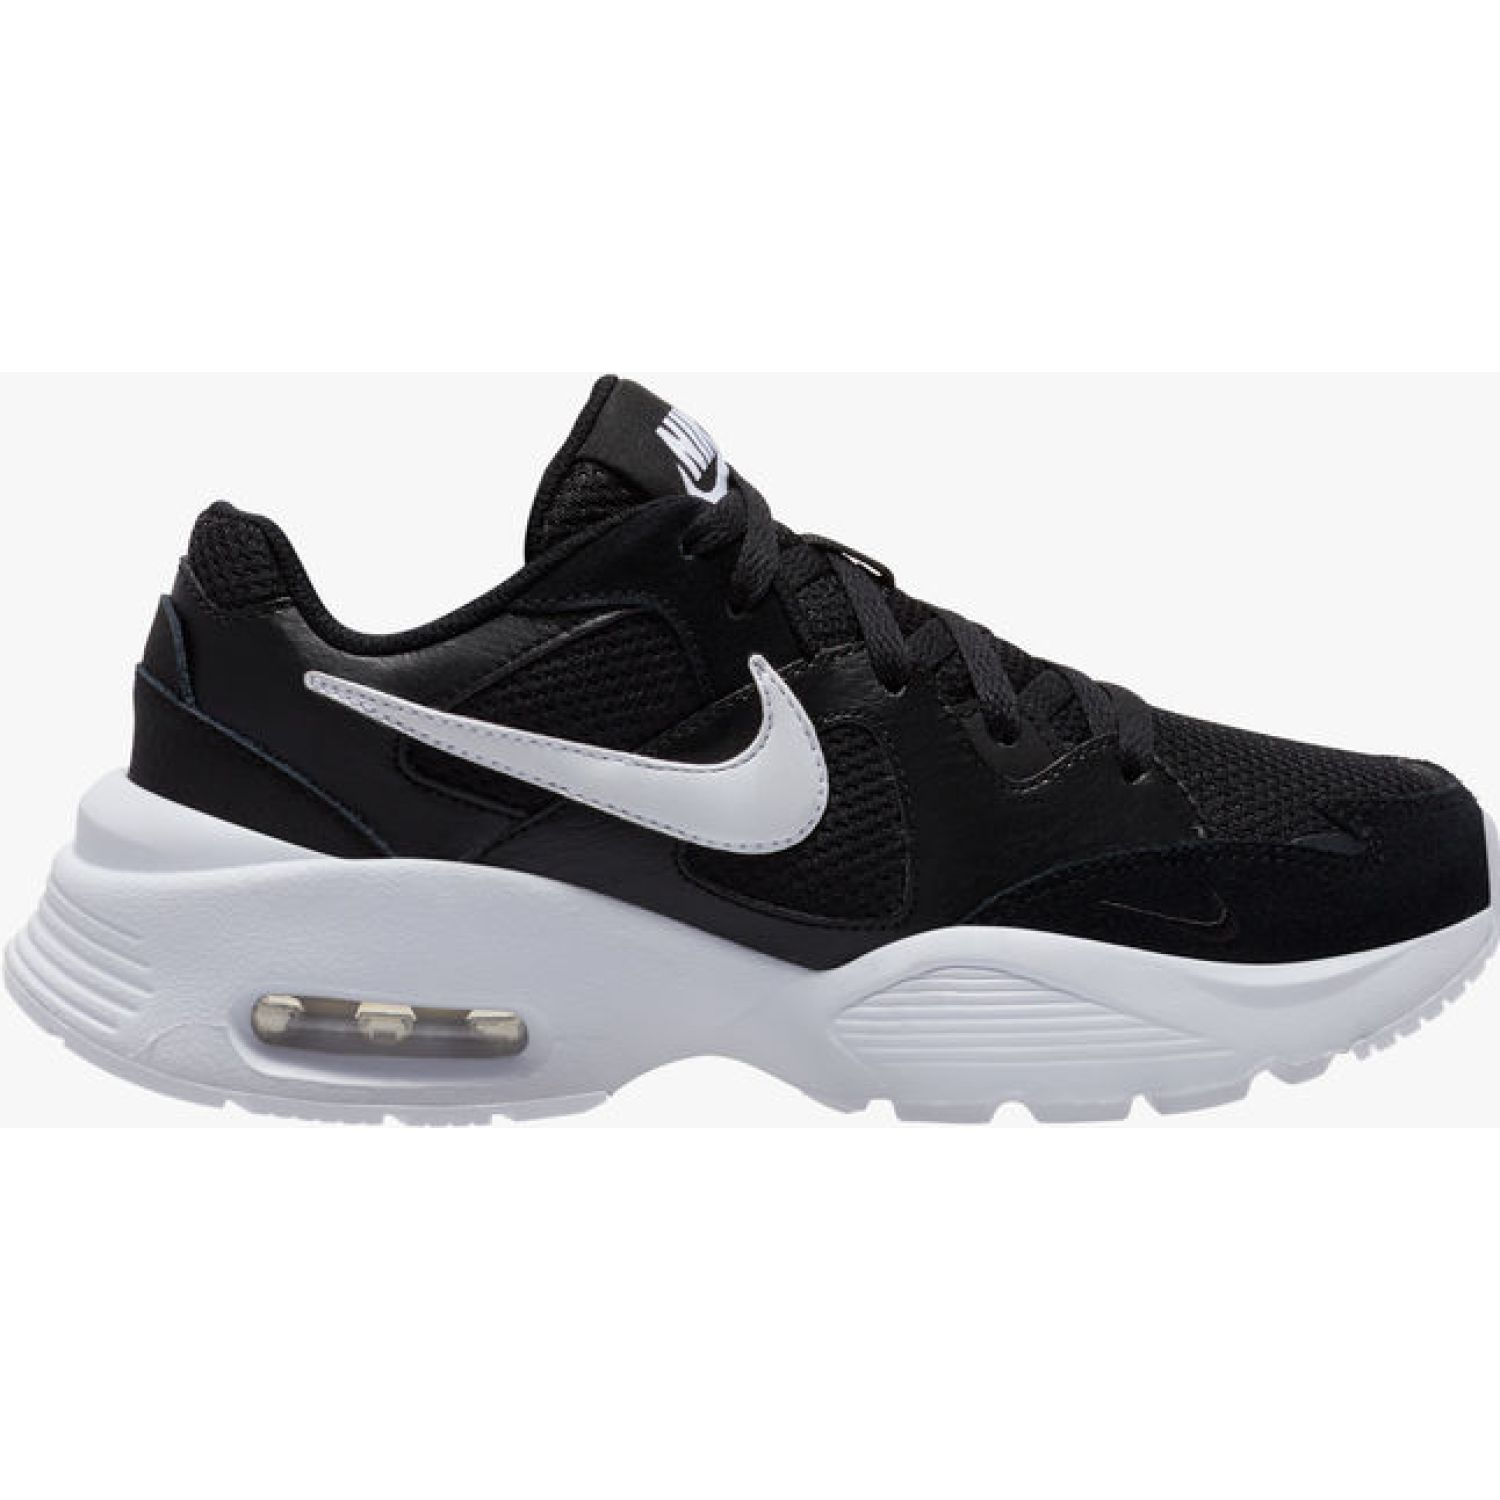 Nike WMNS NIKE AIR MAX FUSION Negro / blanco Walking